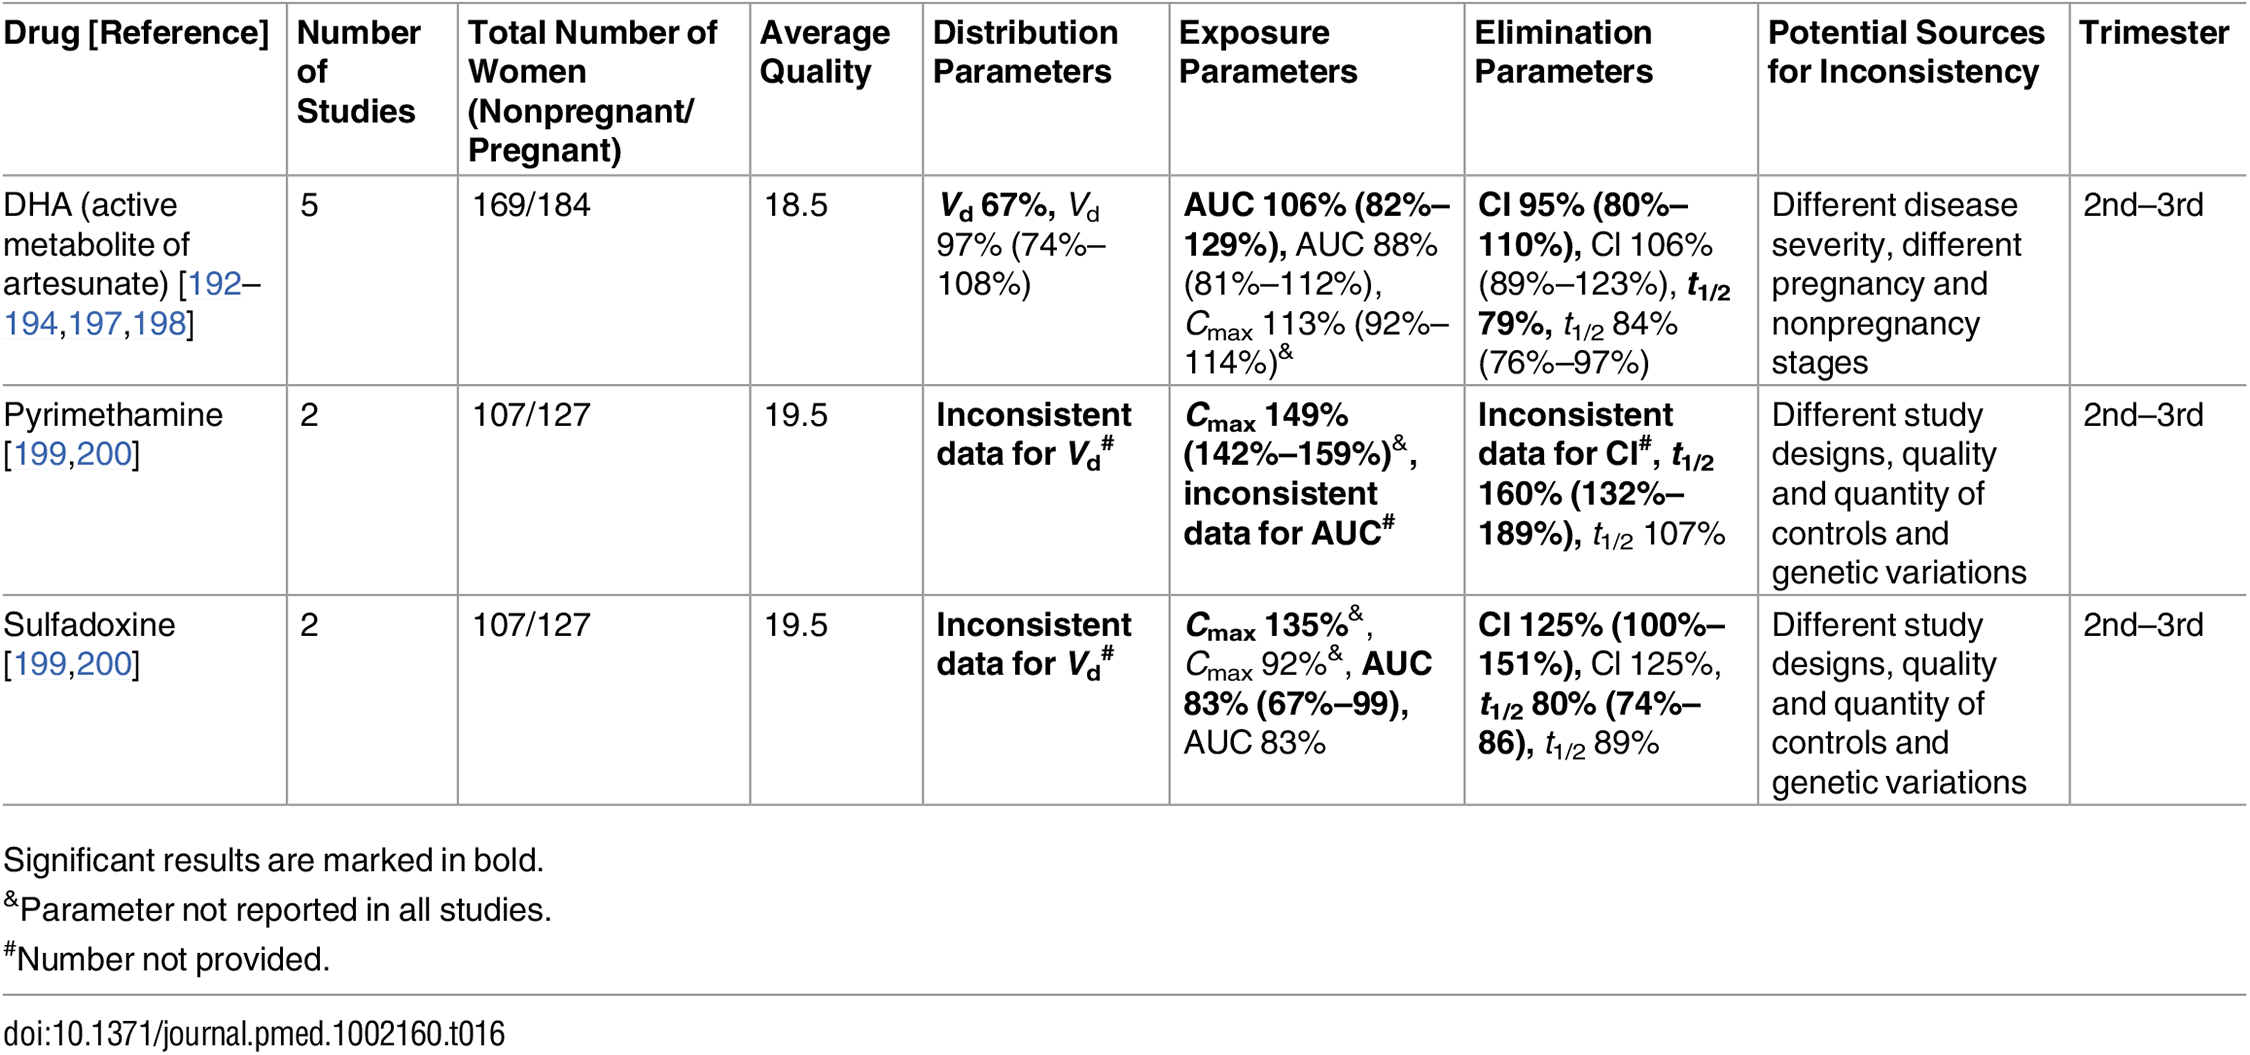 Antimalarial drugs: inconsistent studies of pregnancy-associated pharmacokinetic changes (percent calculated as pregnant/nonpregnant values).